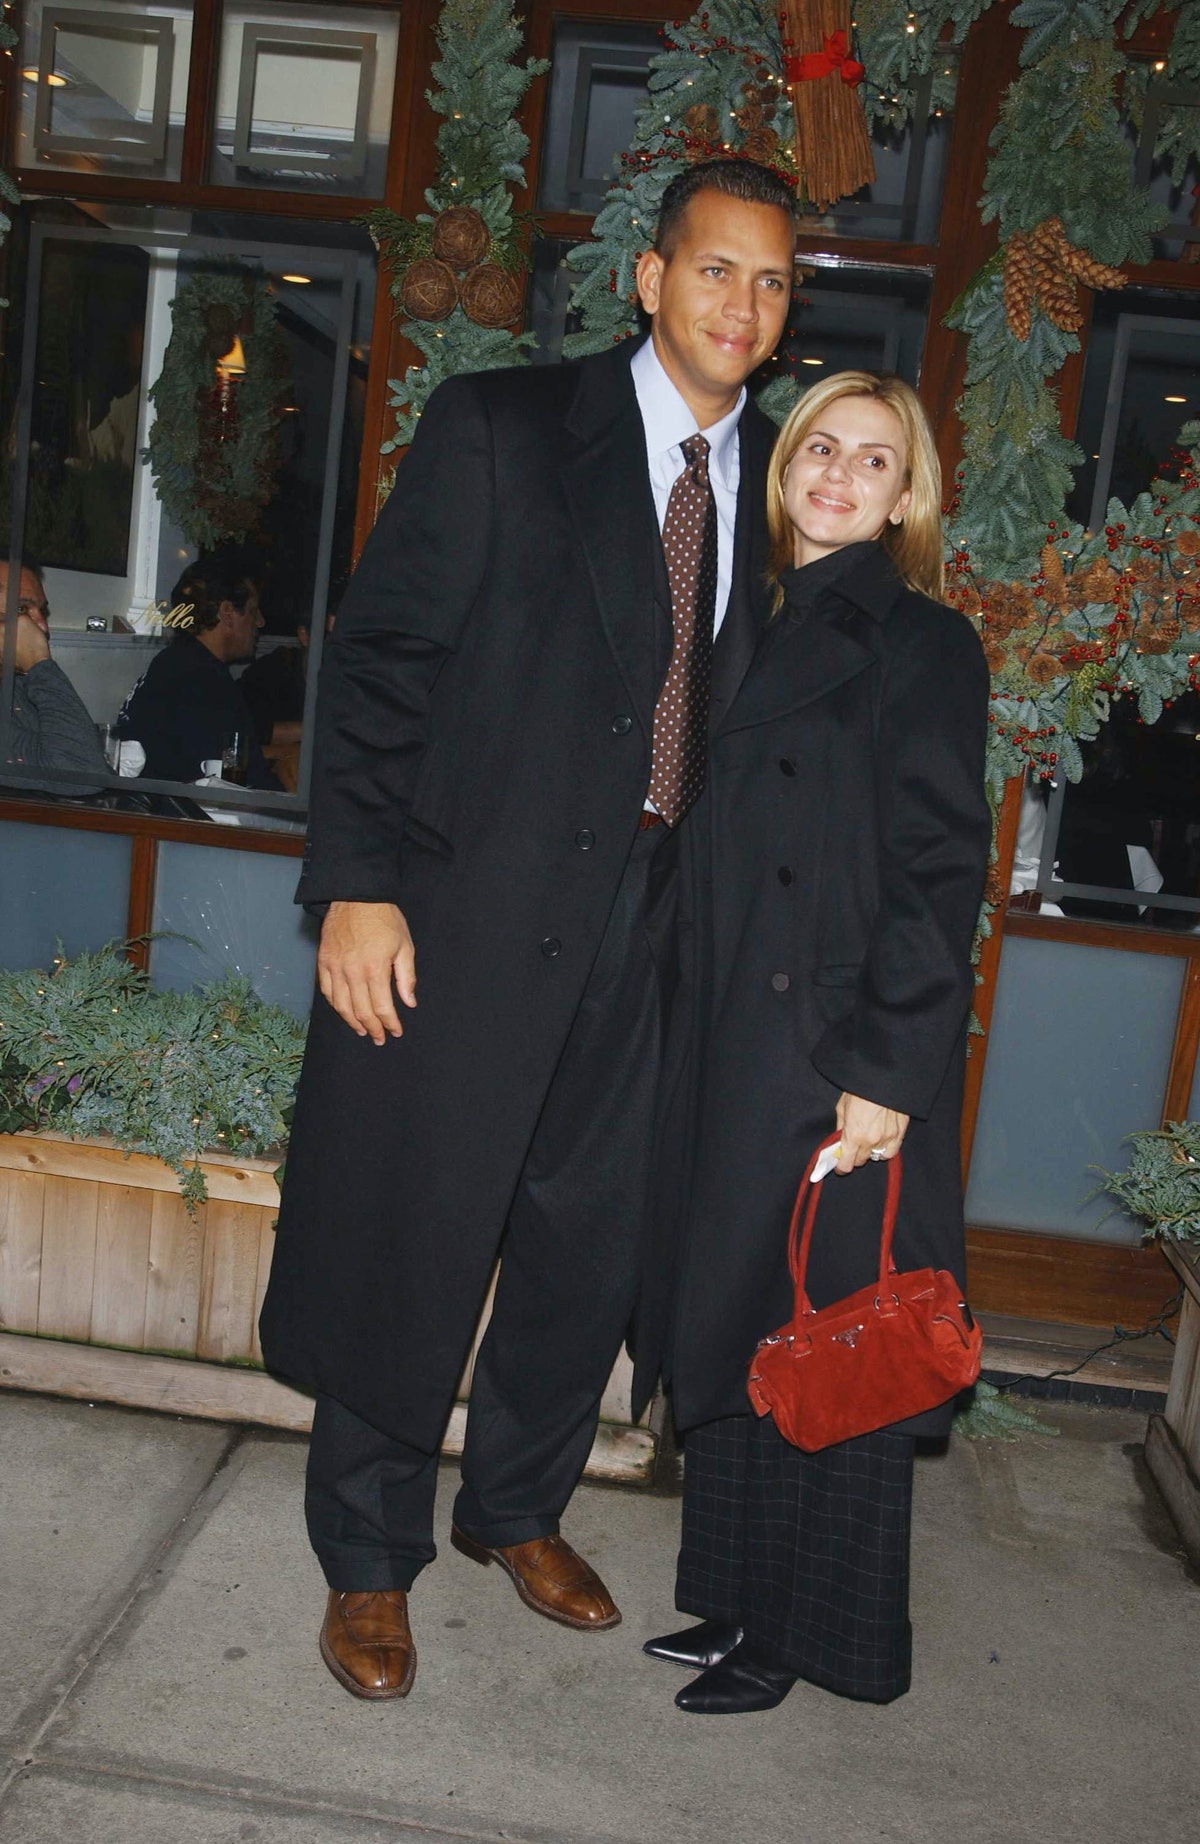 Baseball player Alex Rodriguez and his ex-wife Cynthia Scurtis are shown here together in Italy in 2003 — but the two aren't back together, and A-Rod isn't looking to date.